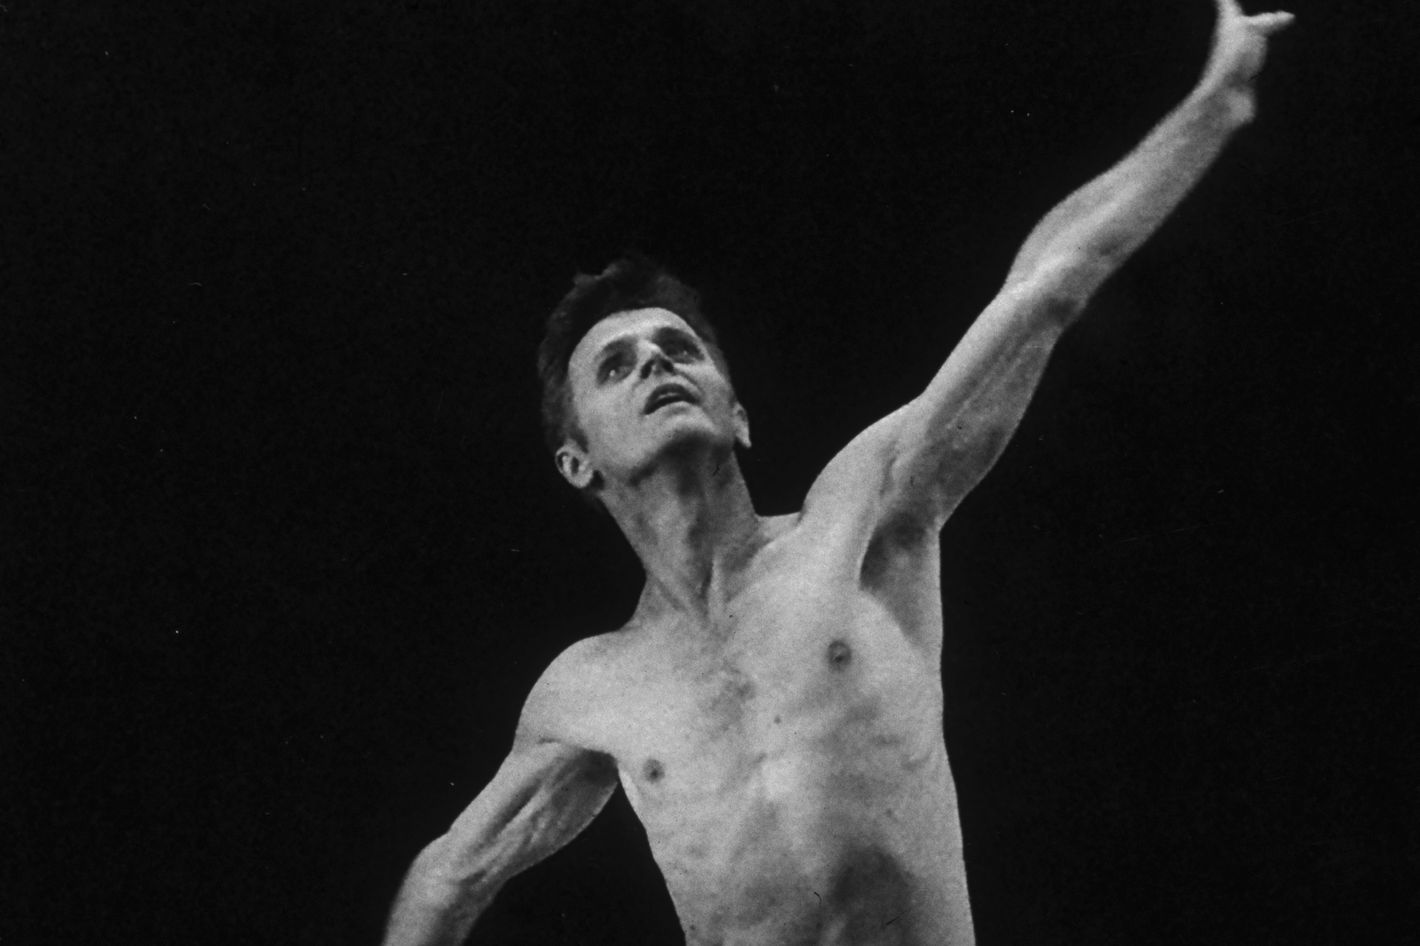 ull-length image of Latvian-born dancer, choreographer and actor Mikhail Baryshnikov performing a dance solo from Paul Taylor's 'Aureole', New York City. He was a featured guest artist for the program.